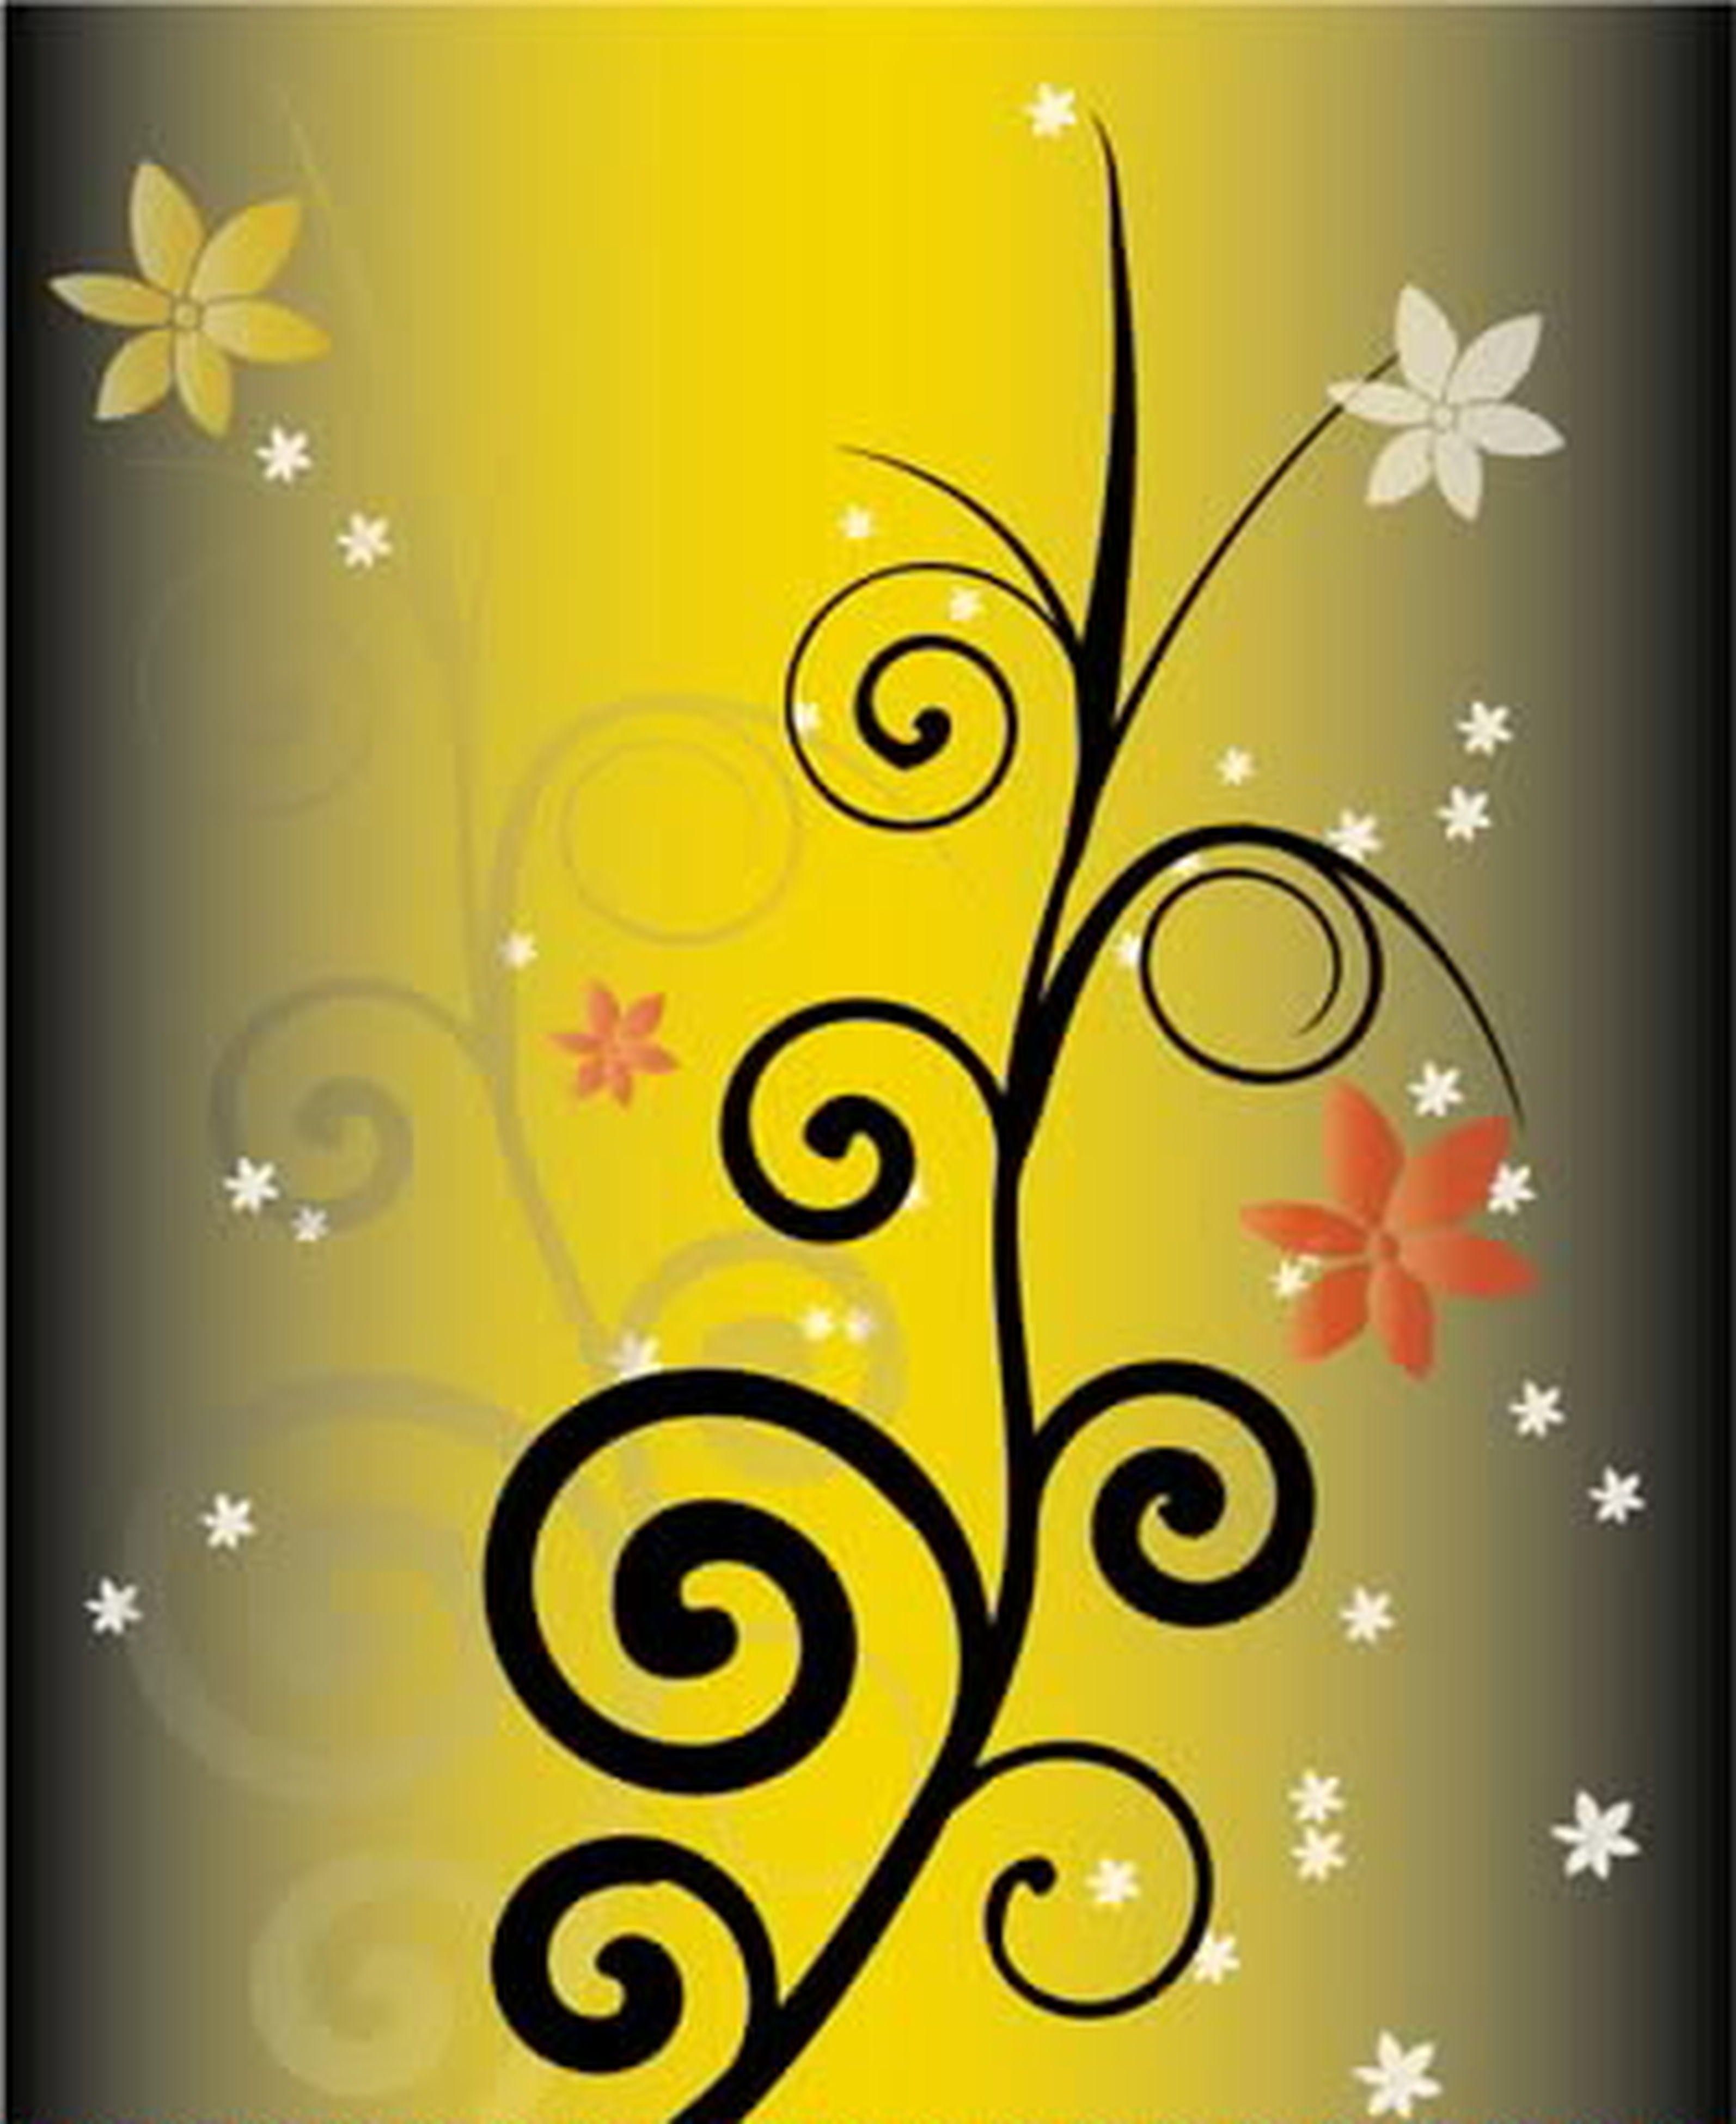 indoors, yellow, creativity, art and craft, art, transfer print, multi colored, auto post production filter, wall - building feature, circle, design, decoration, pattern, close-up, no people, wall, lighting equipment, text, ideas, illuminated